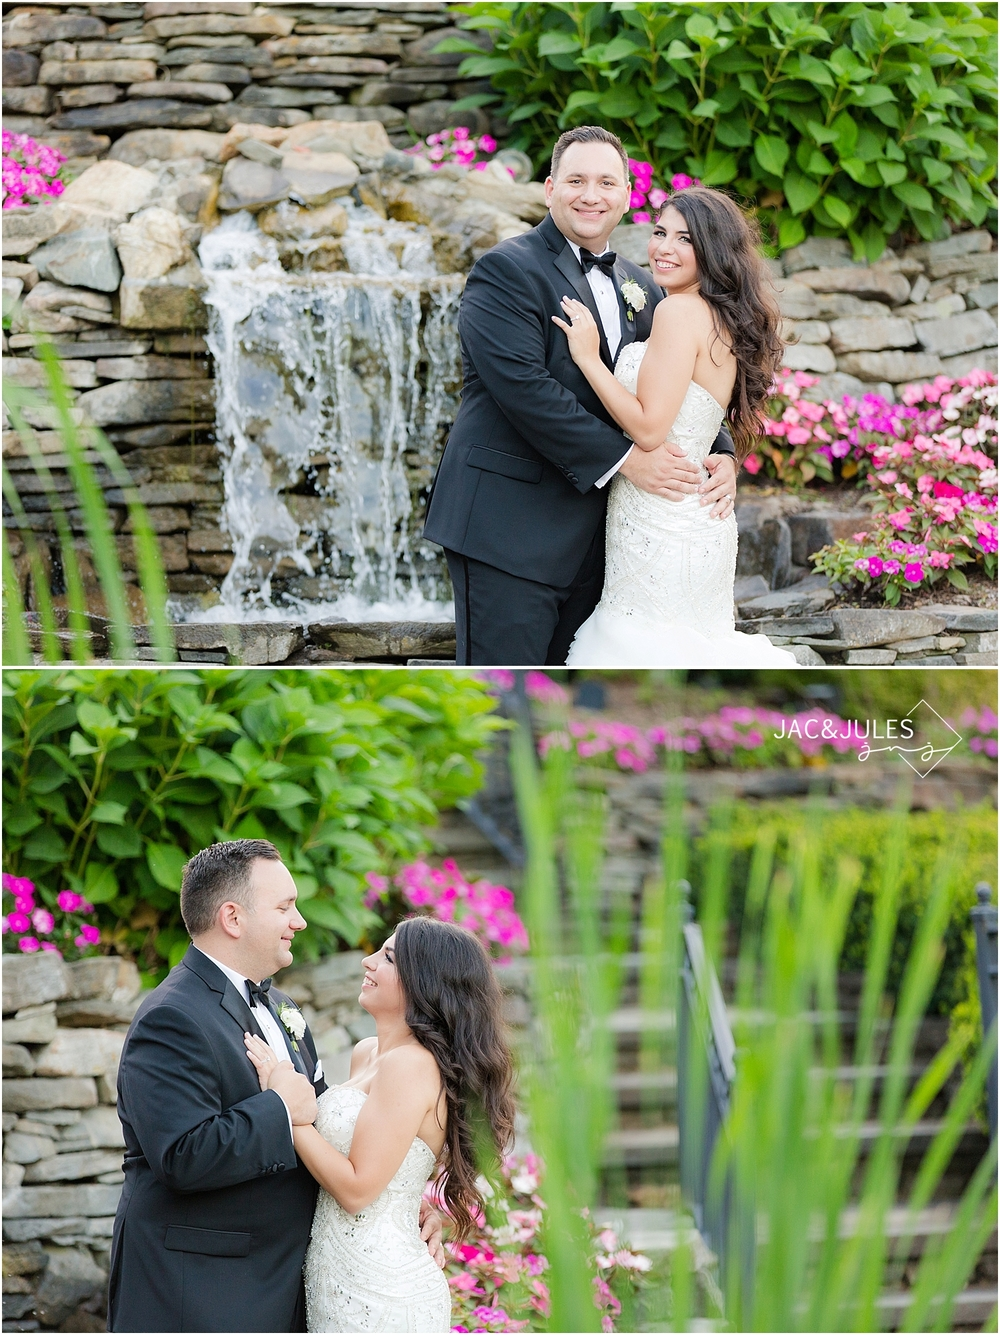 jacnjules photograph elegant wedding at The Park Savoy in NJ